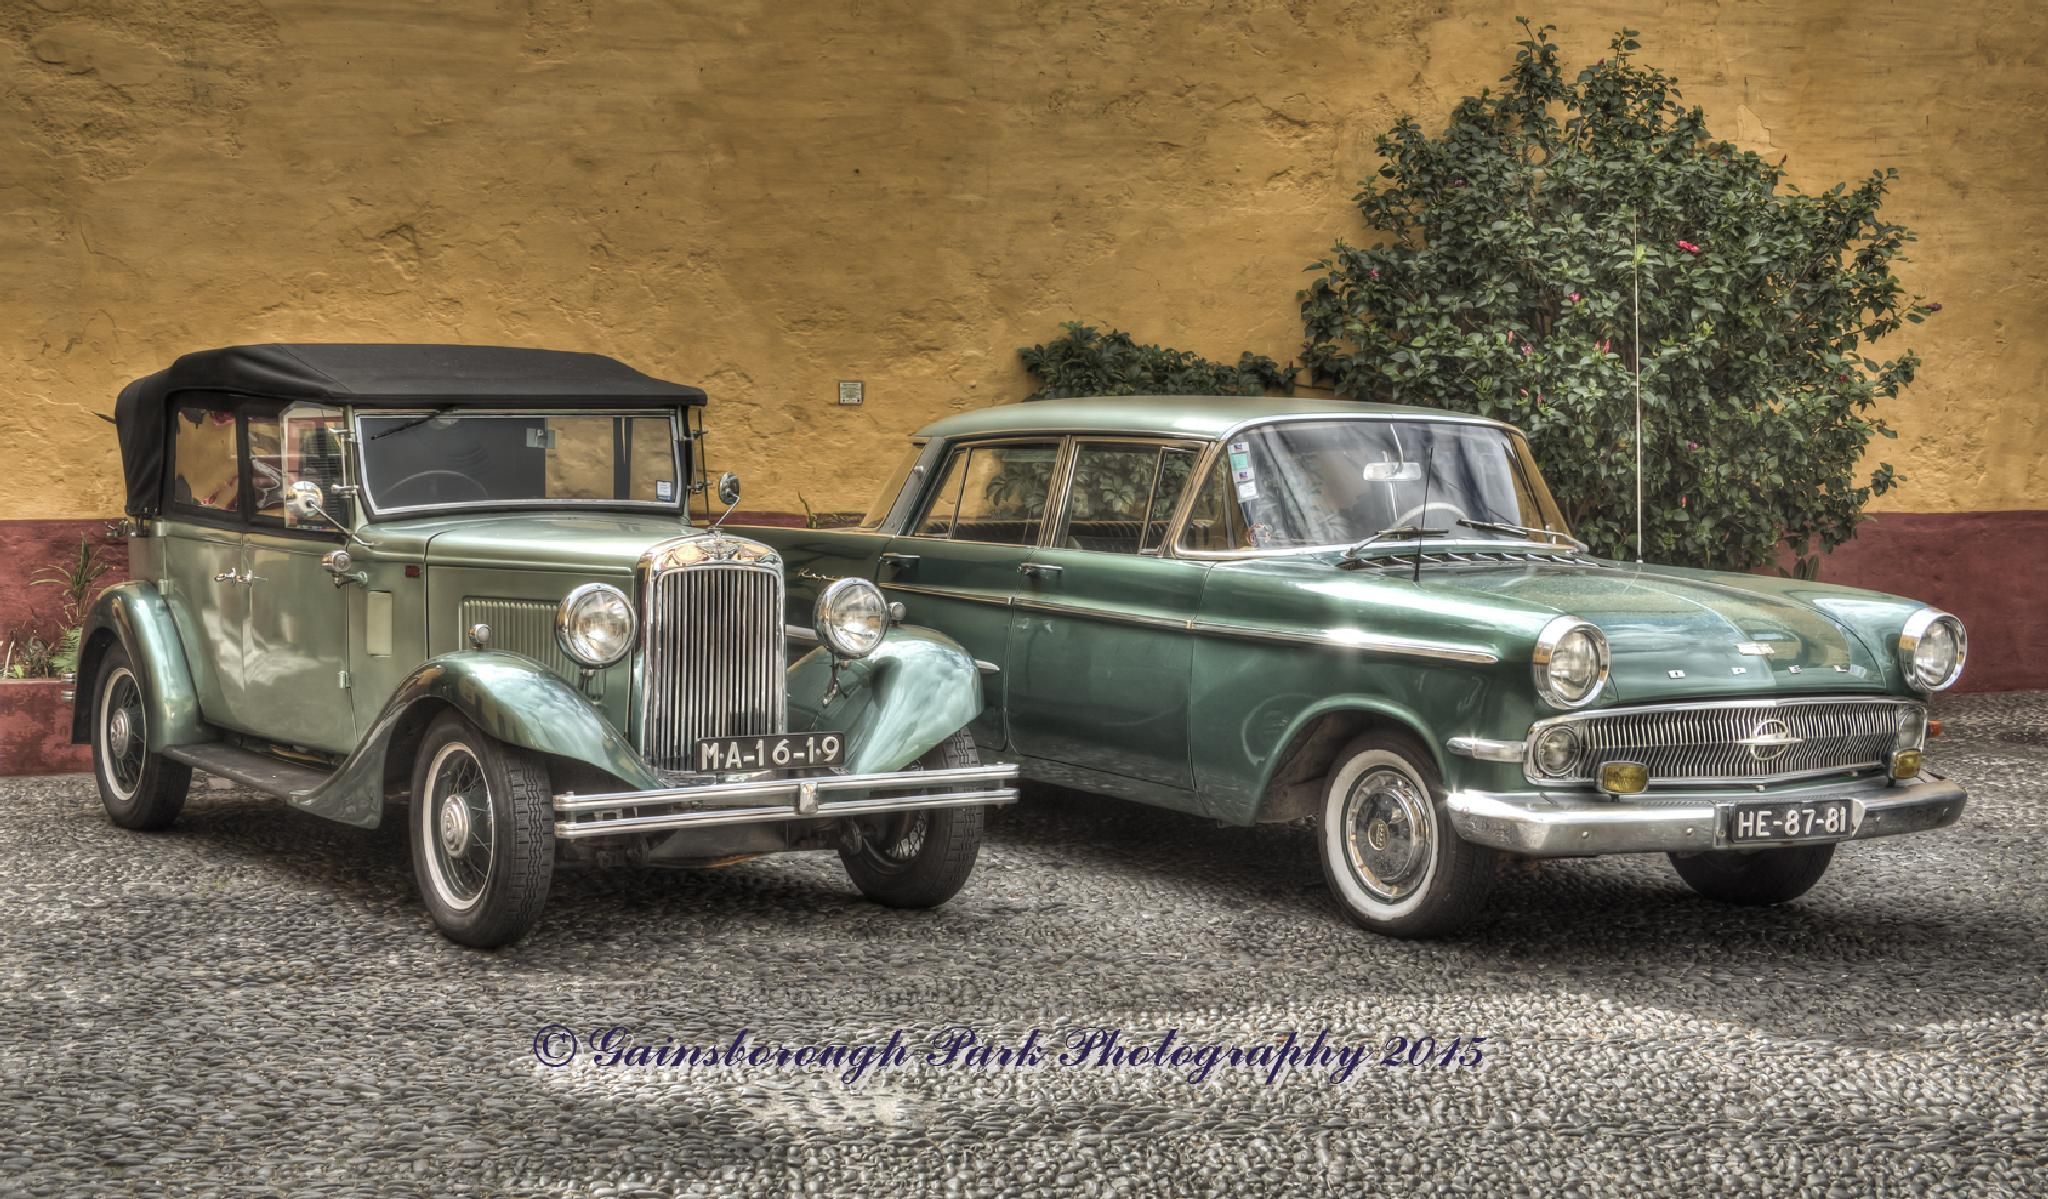 Classic cars, Sao Tiago Fort, Funchal by Gainsborough Park Photography